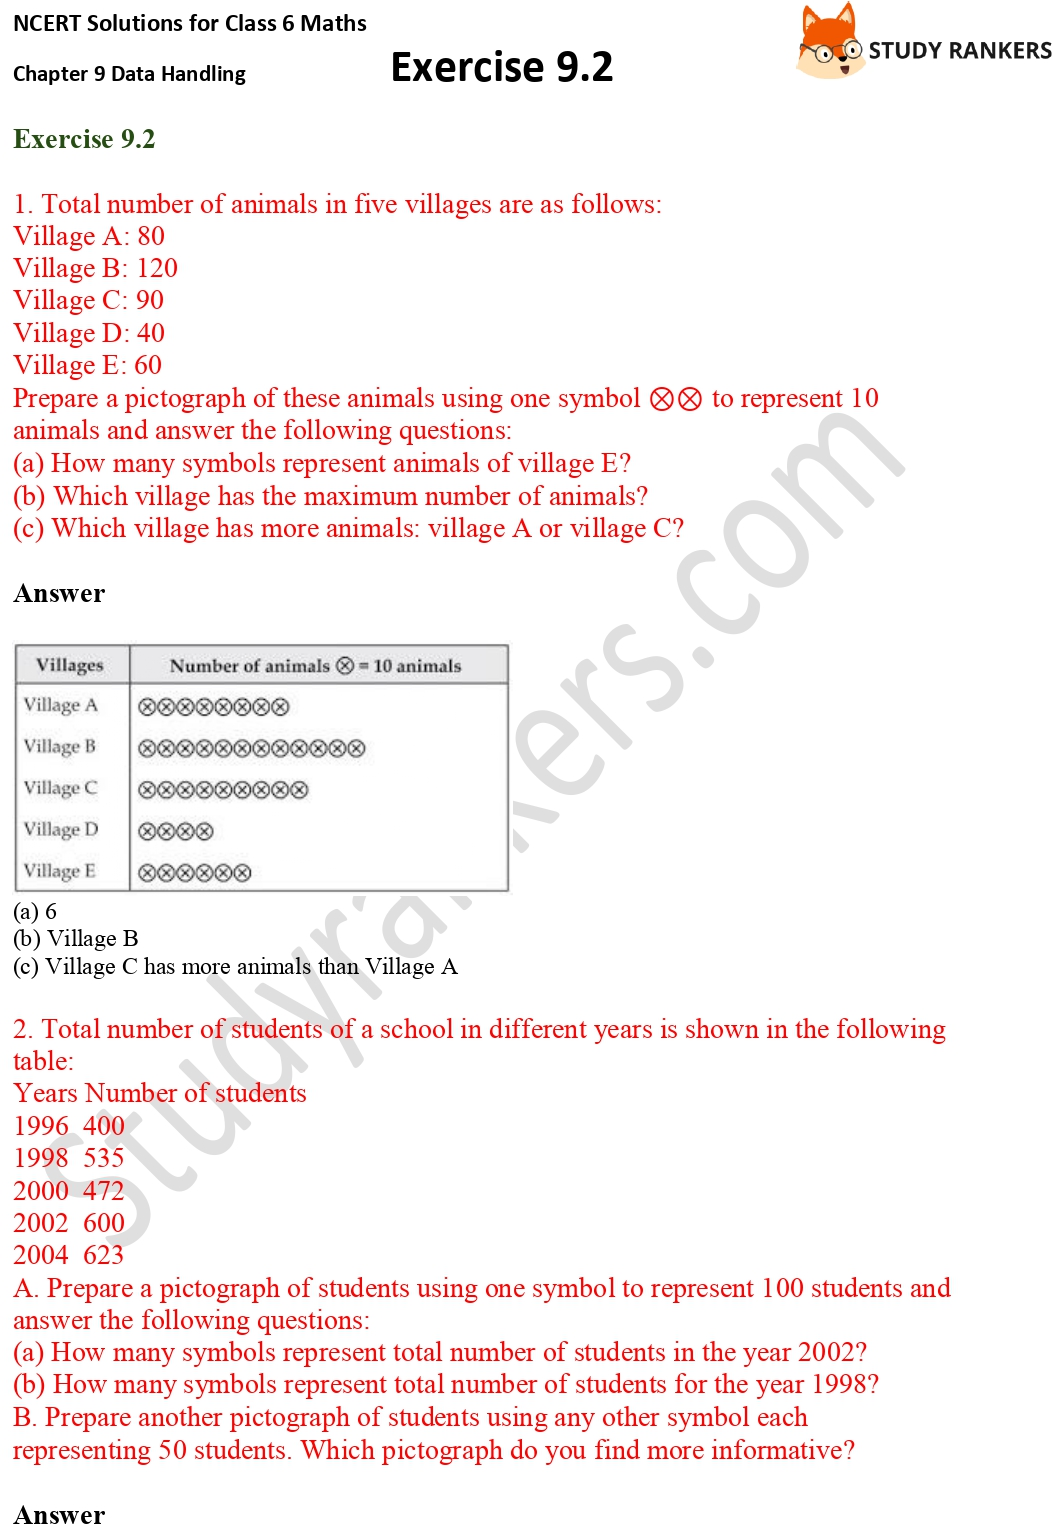 NCERT Solutions for Class 6 Maths Chapter 9 Data Handling Exercise 9.2 Part 1